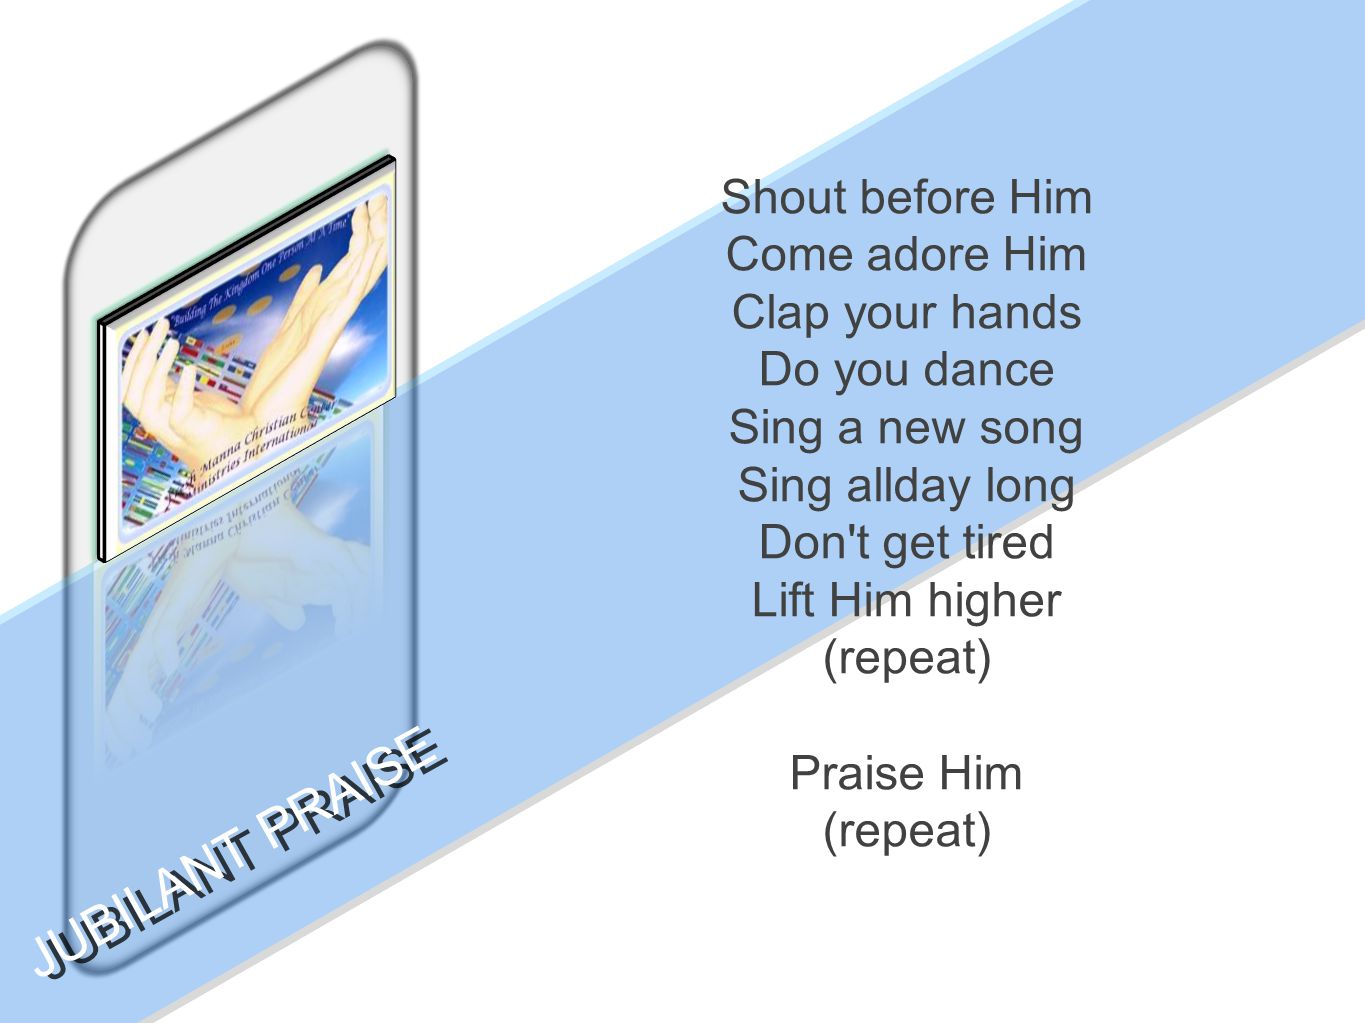 Shout before Him Come adore Him Clap your hands Do you dance Sing a new song Sing allday long Don't get tired Lift Him higher (repeat) Praise Him (rep